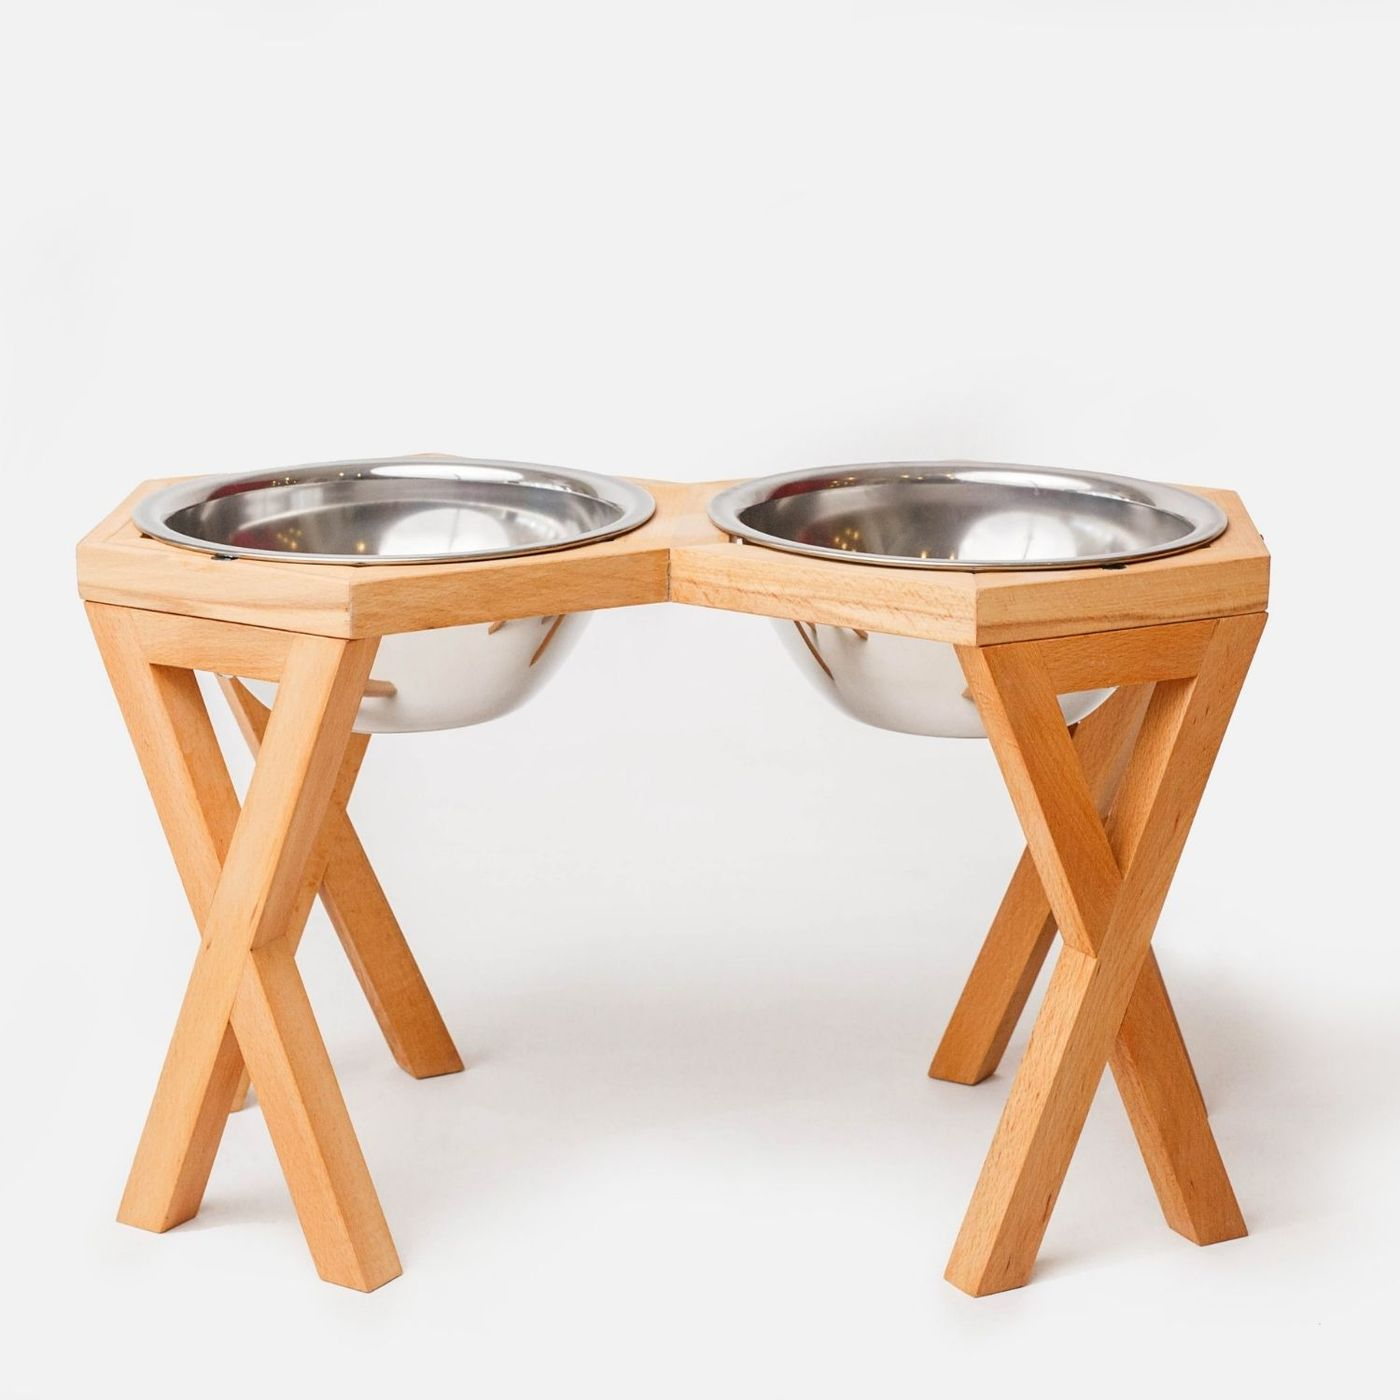 Why You Should Buy a Wooden Dog Bowl Stand?